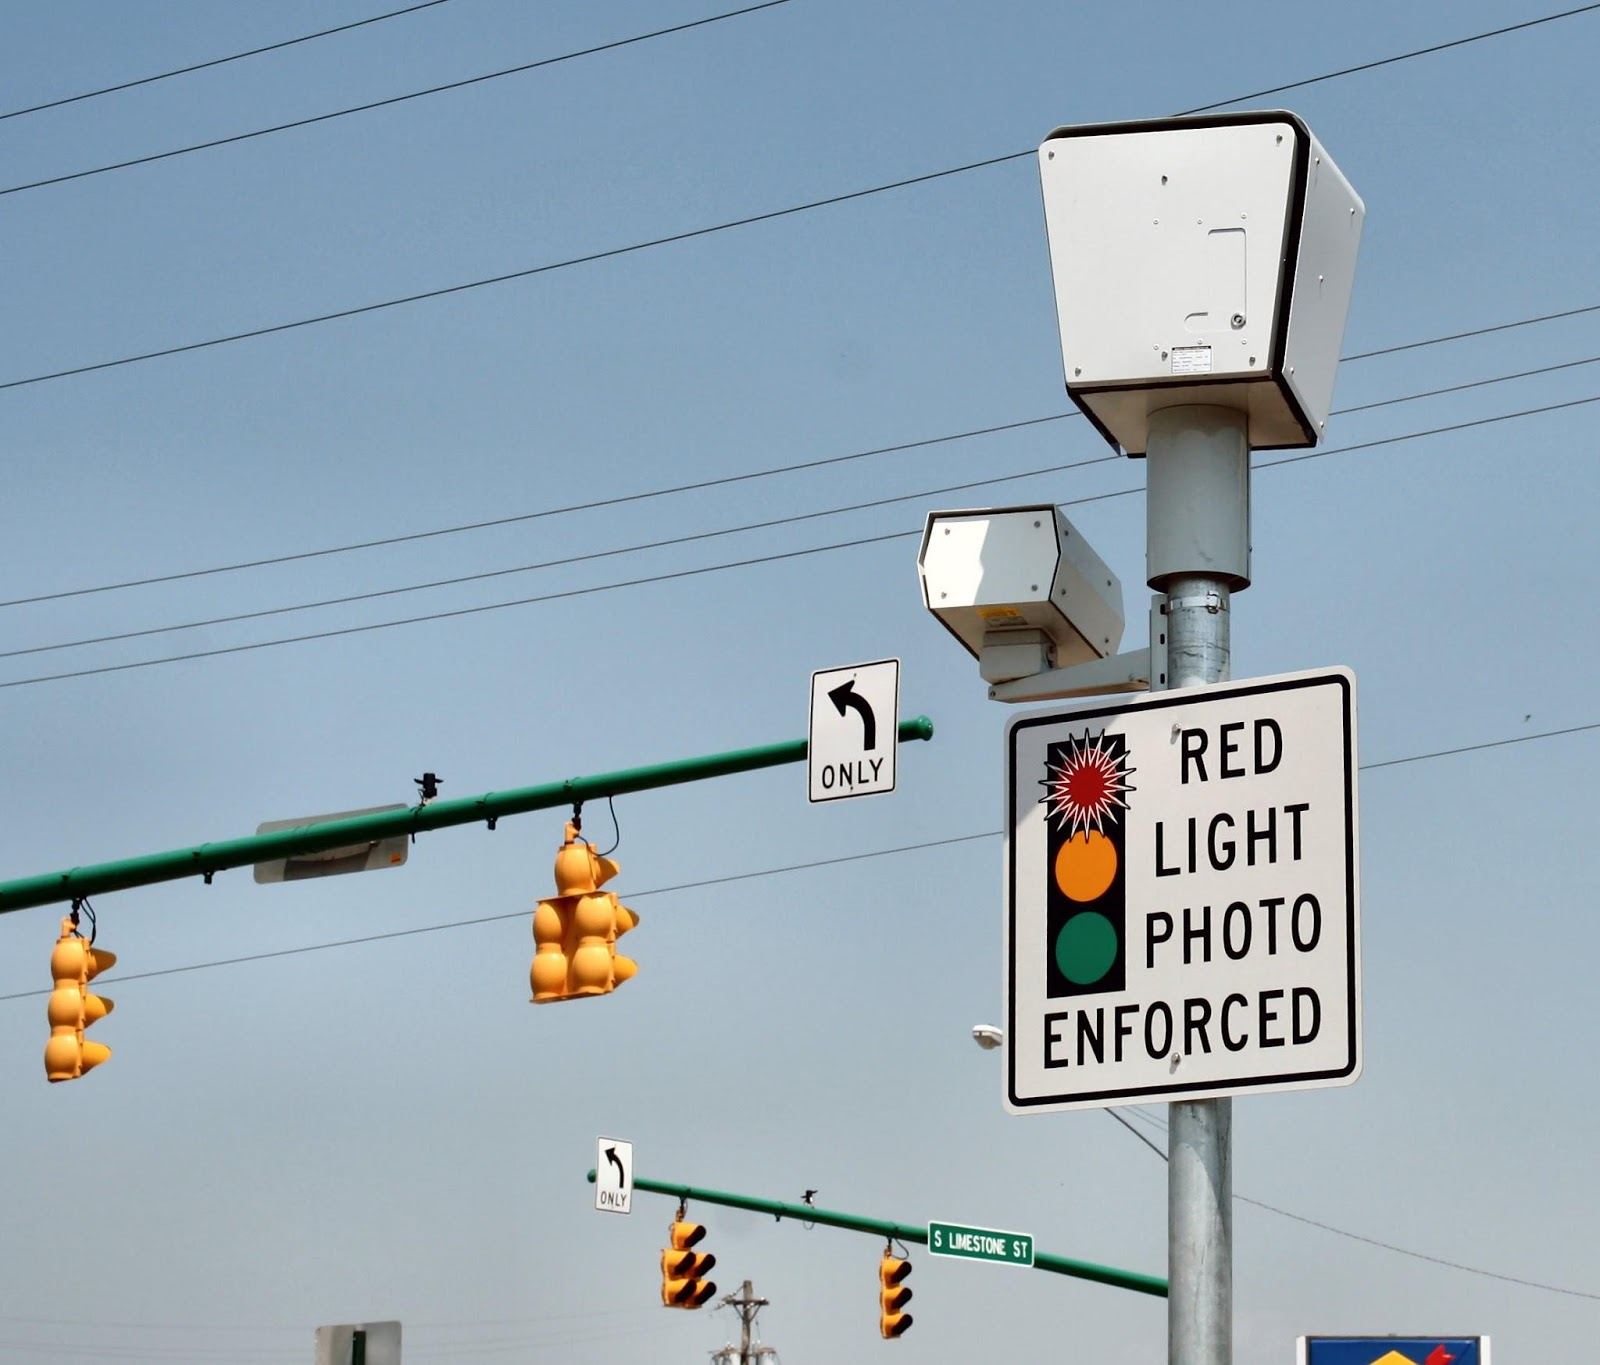 B.C. to Expand Red-Light Cameras, But Who Gets the Revenue?